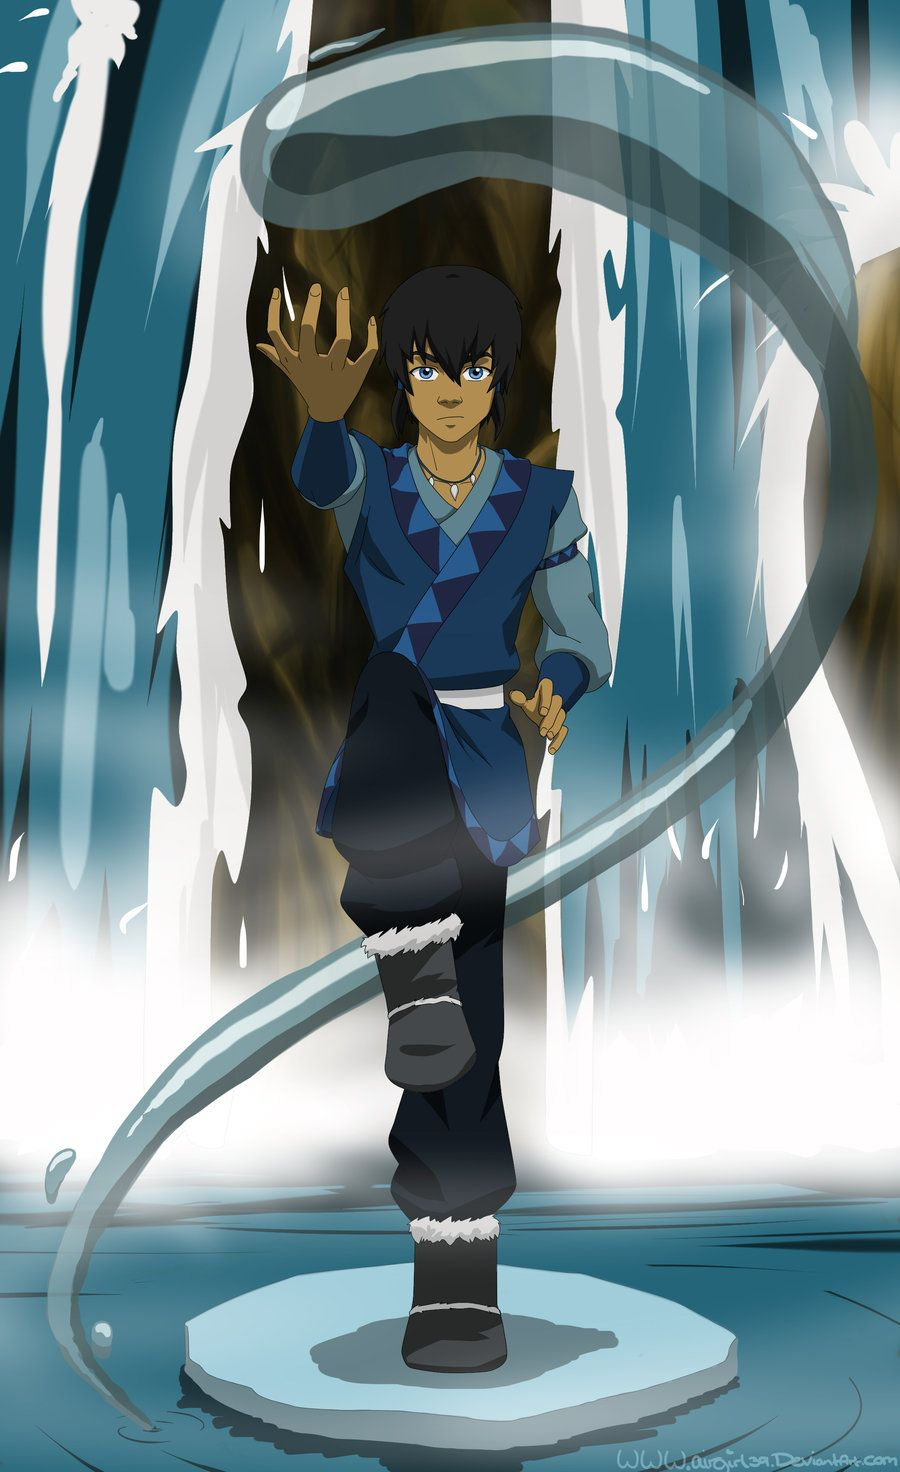 waterbender dress up Google Search Avatar characters